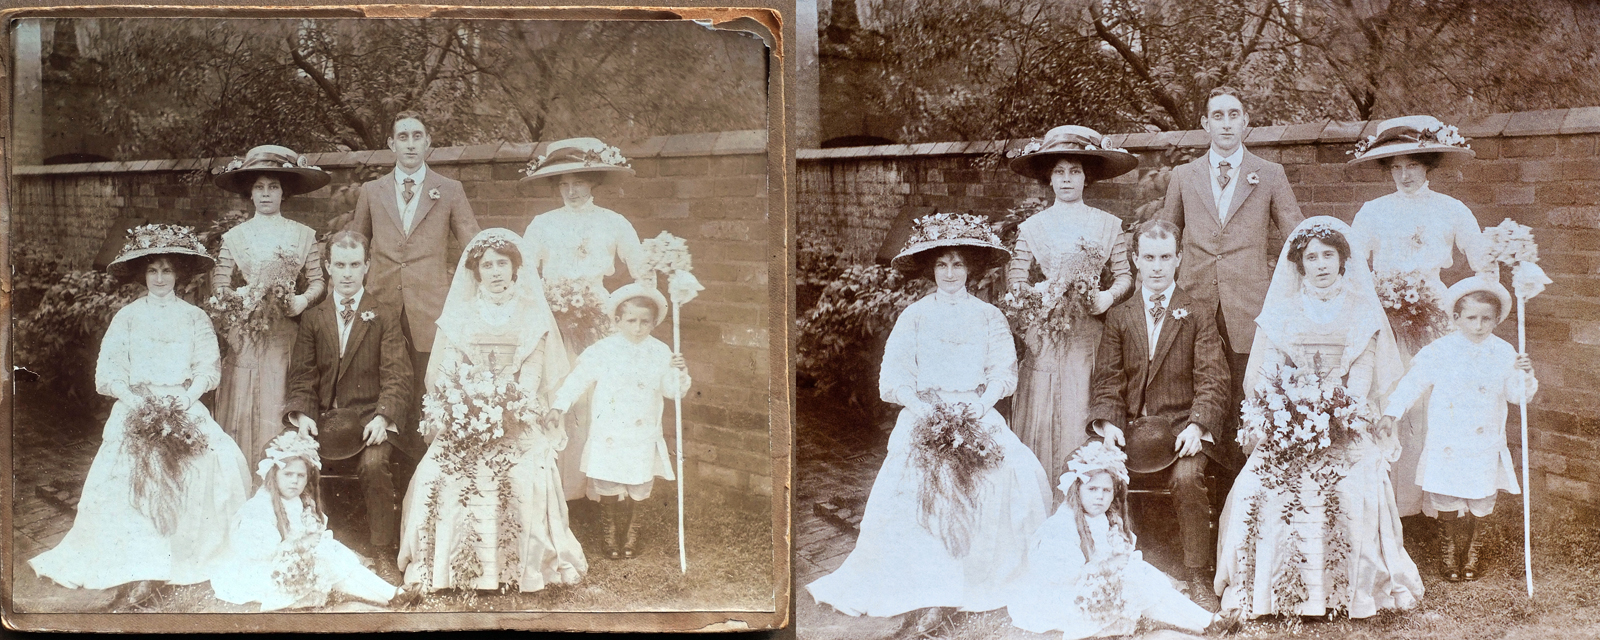 Restoring Old Photographs